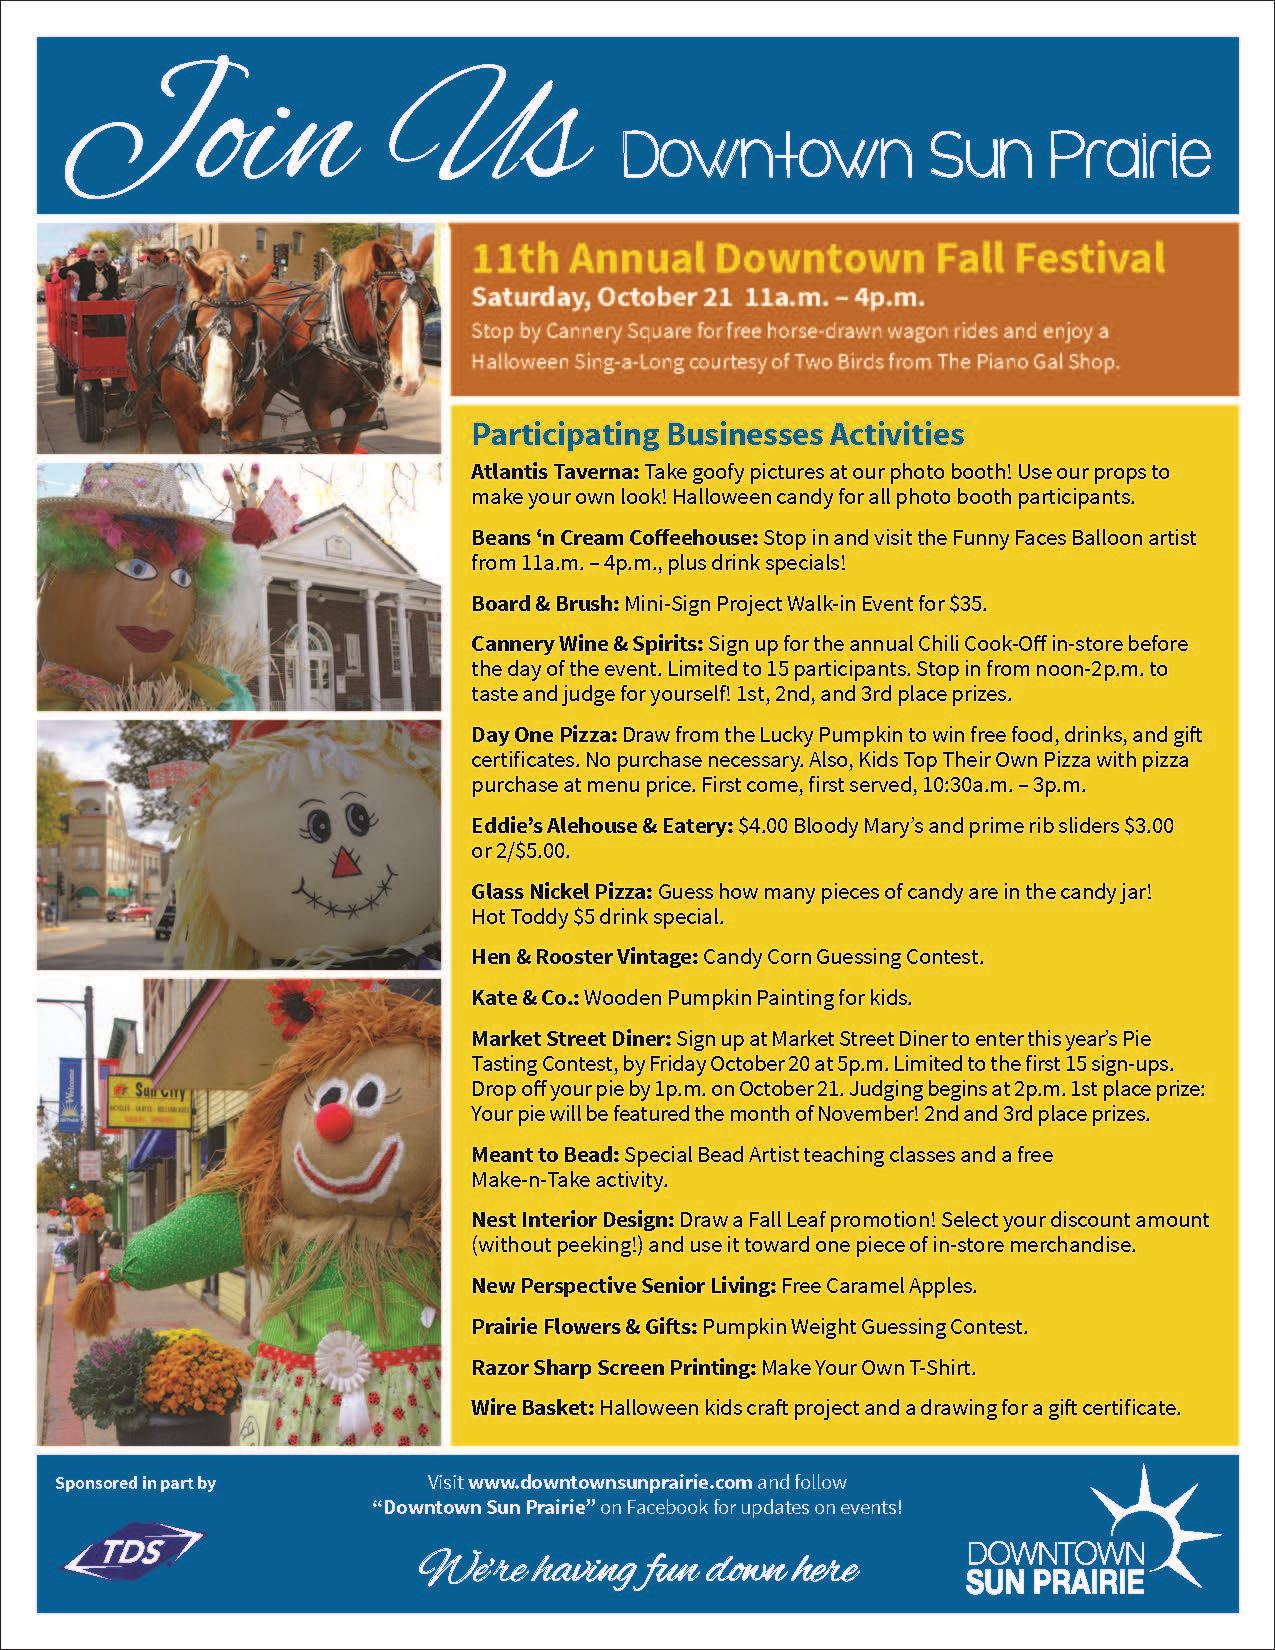 Fall Festival Participating Business Activities Flyer